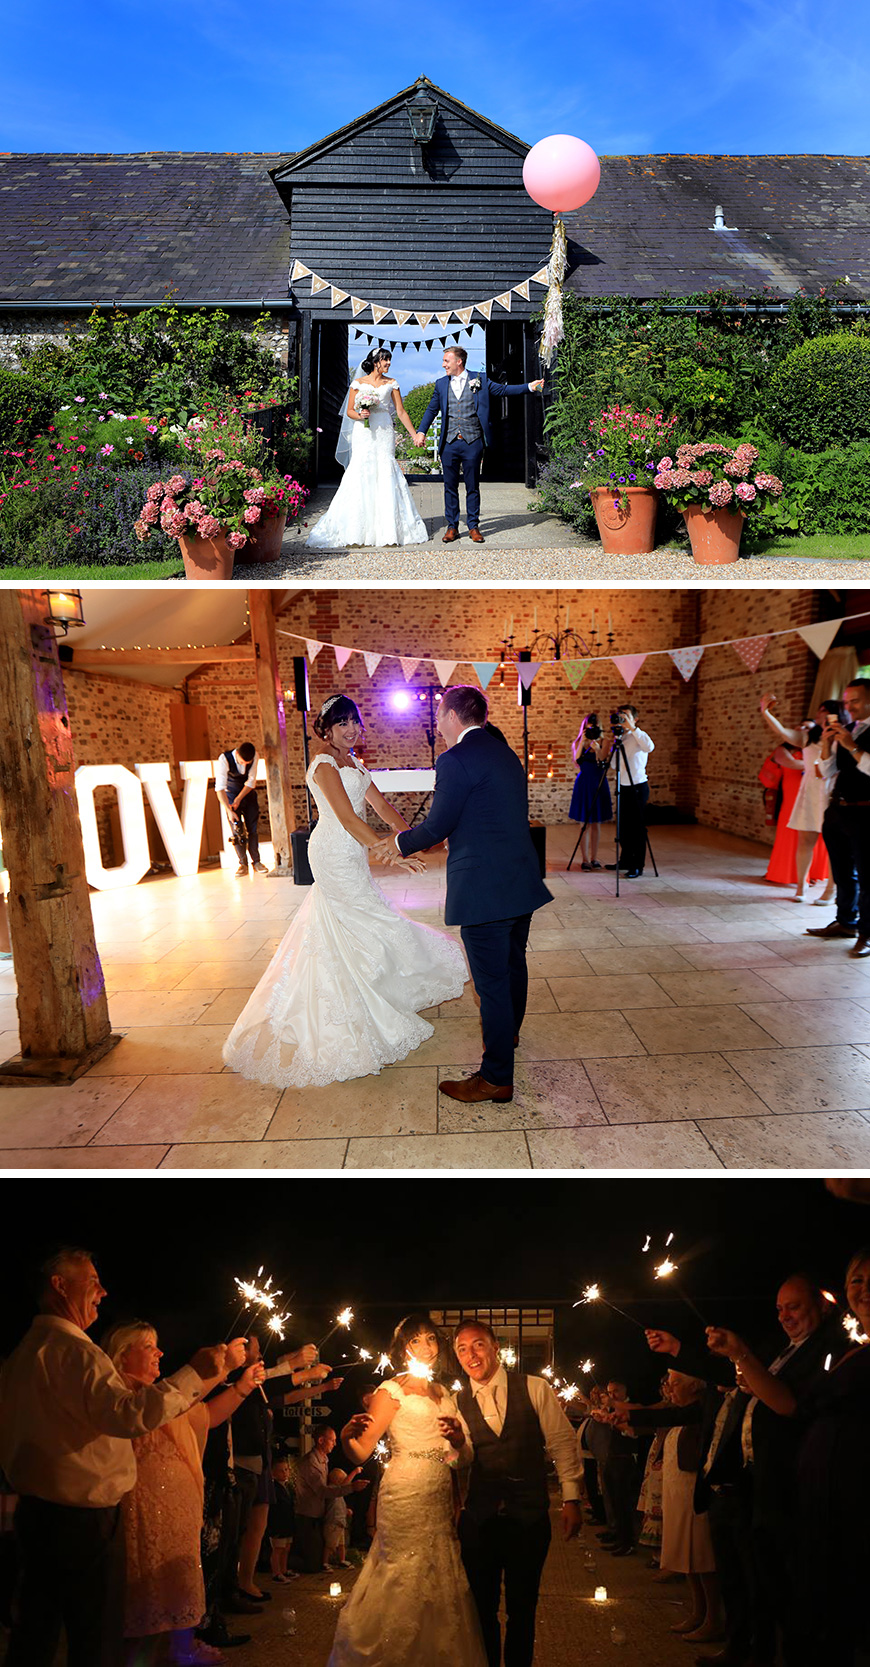 Real Wedding - Jessica and Jon's Retro Summer Wedding at Upwaltham Barns | CHWV